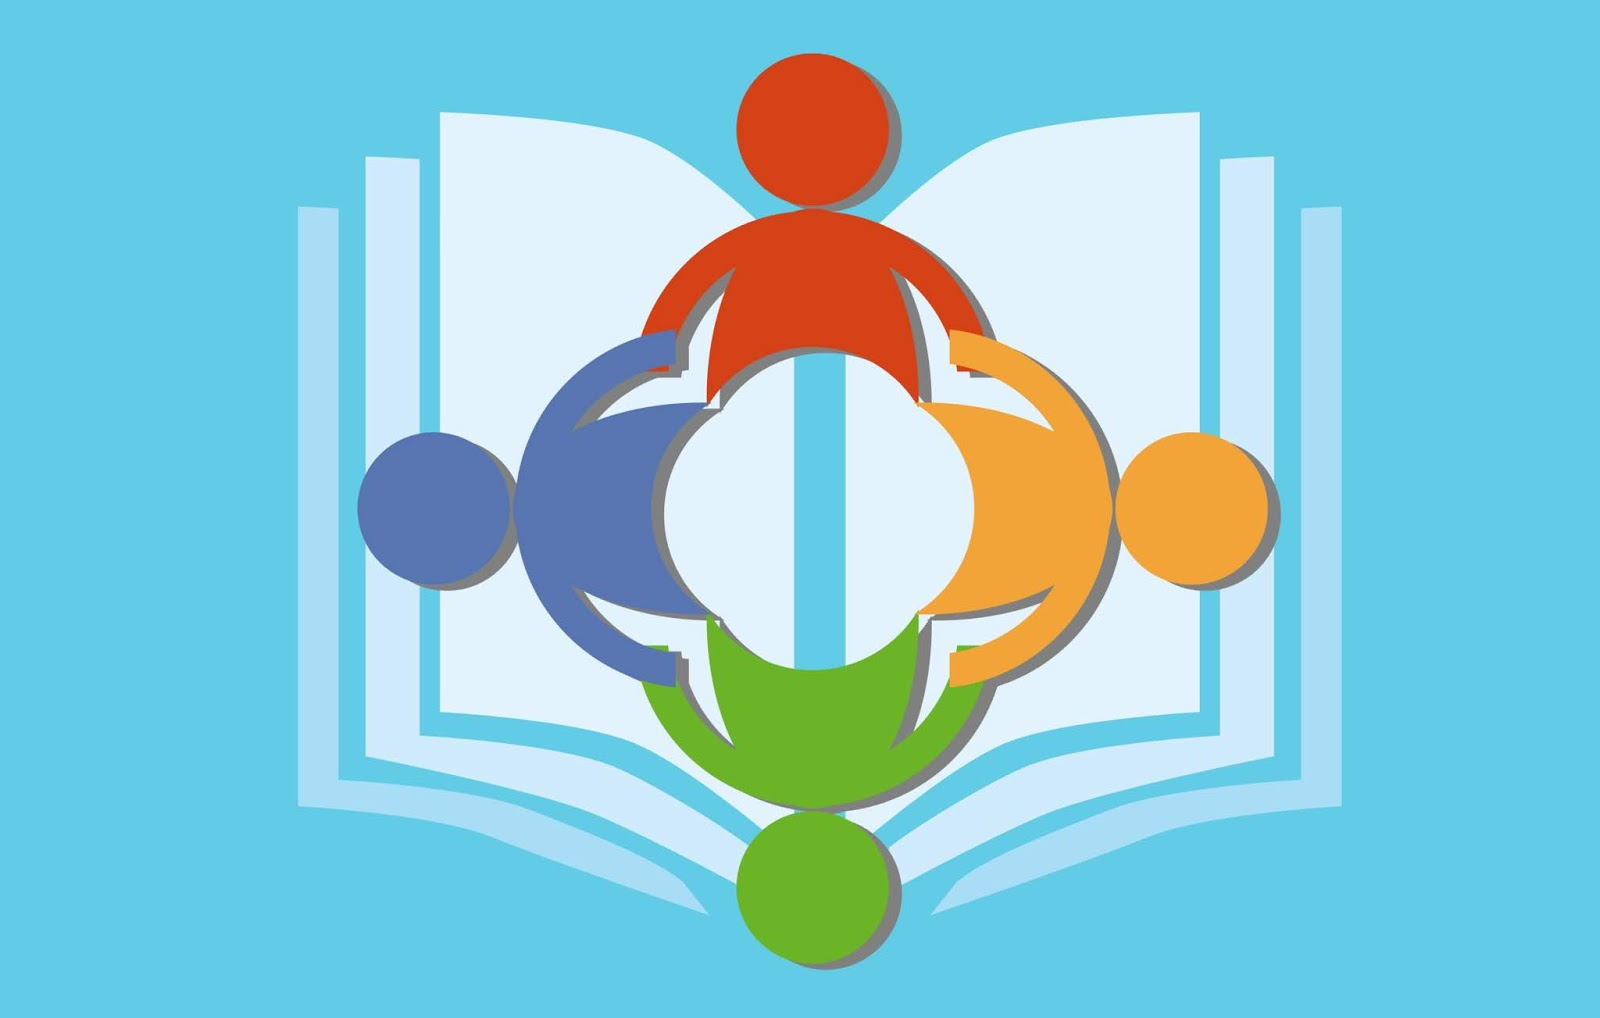 school, reading, book, community, gathering, male, group, education, learning, library, people, friends, design, friendship, together, knowledge, information, public, learn, idea, back to school, paper, publish, awareness, cartoon